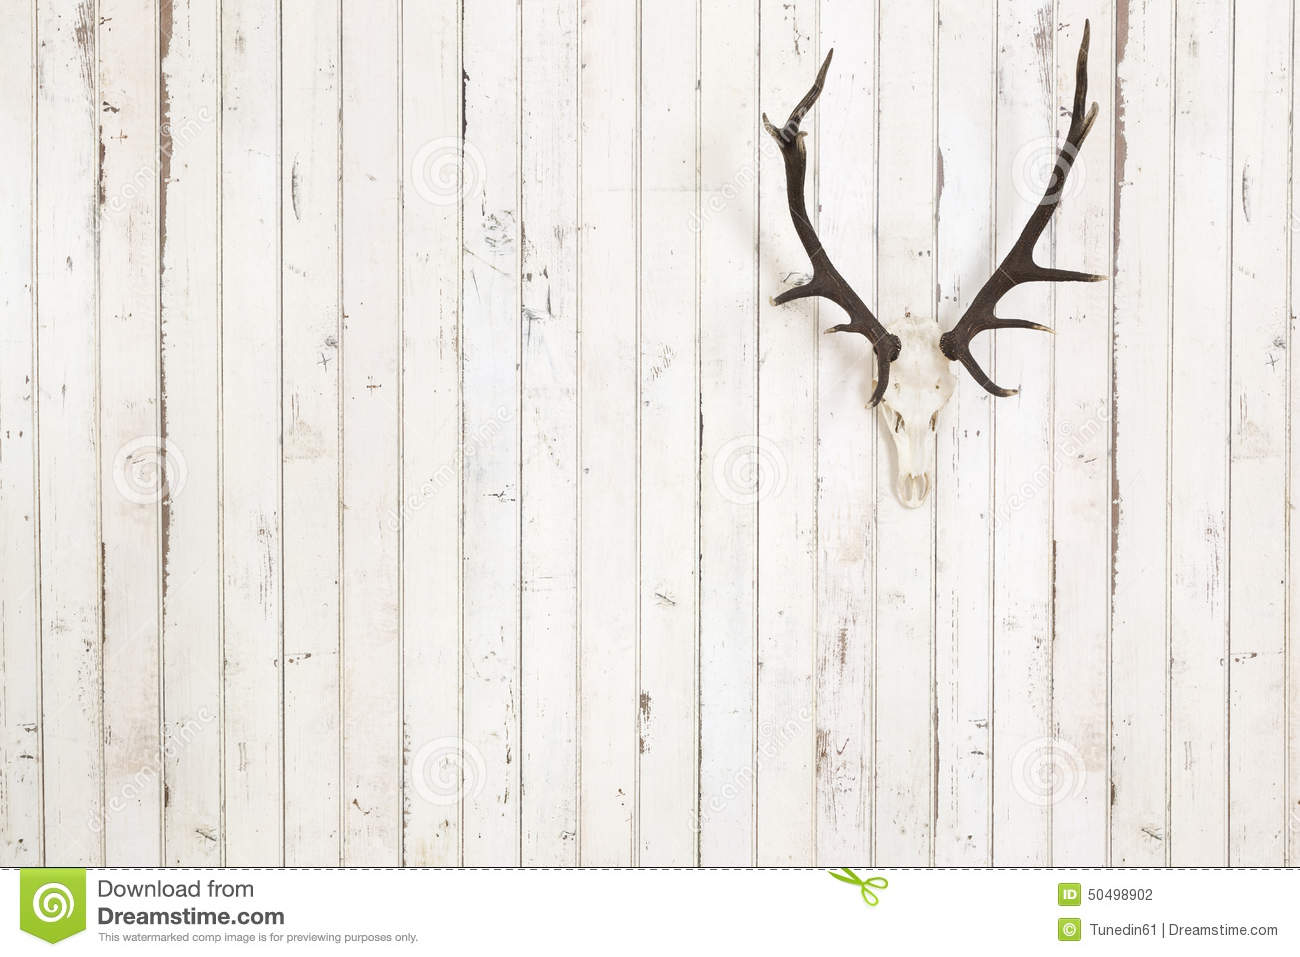 Deer antler on old white wooden wall